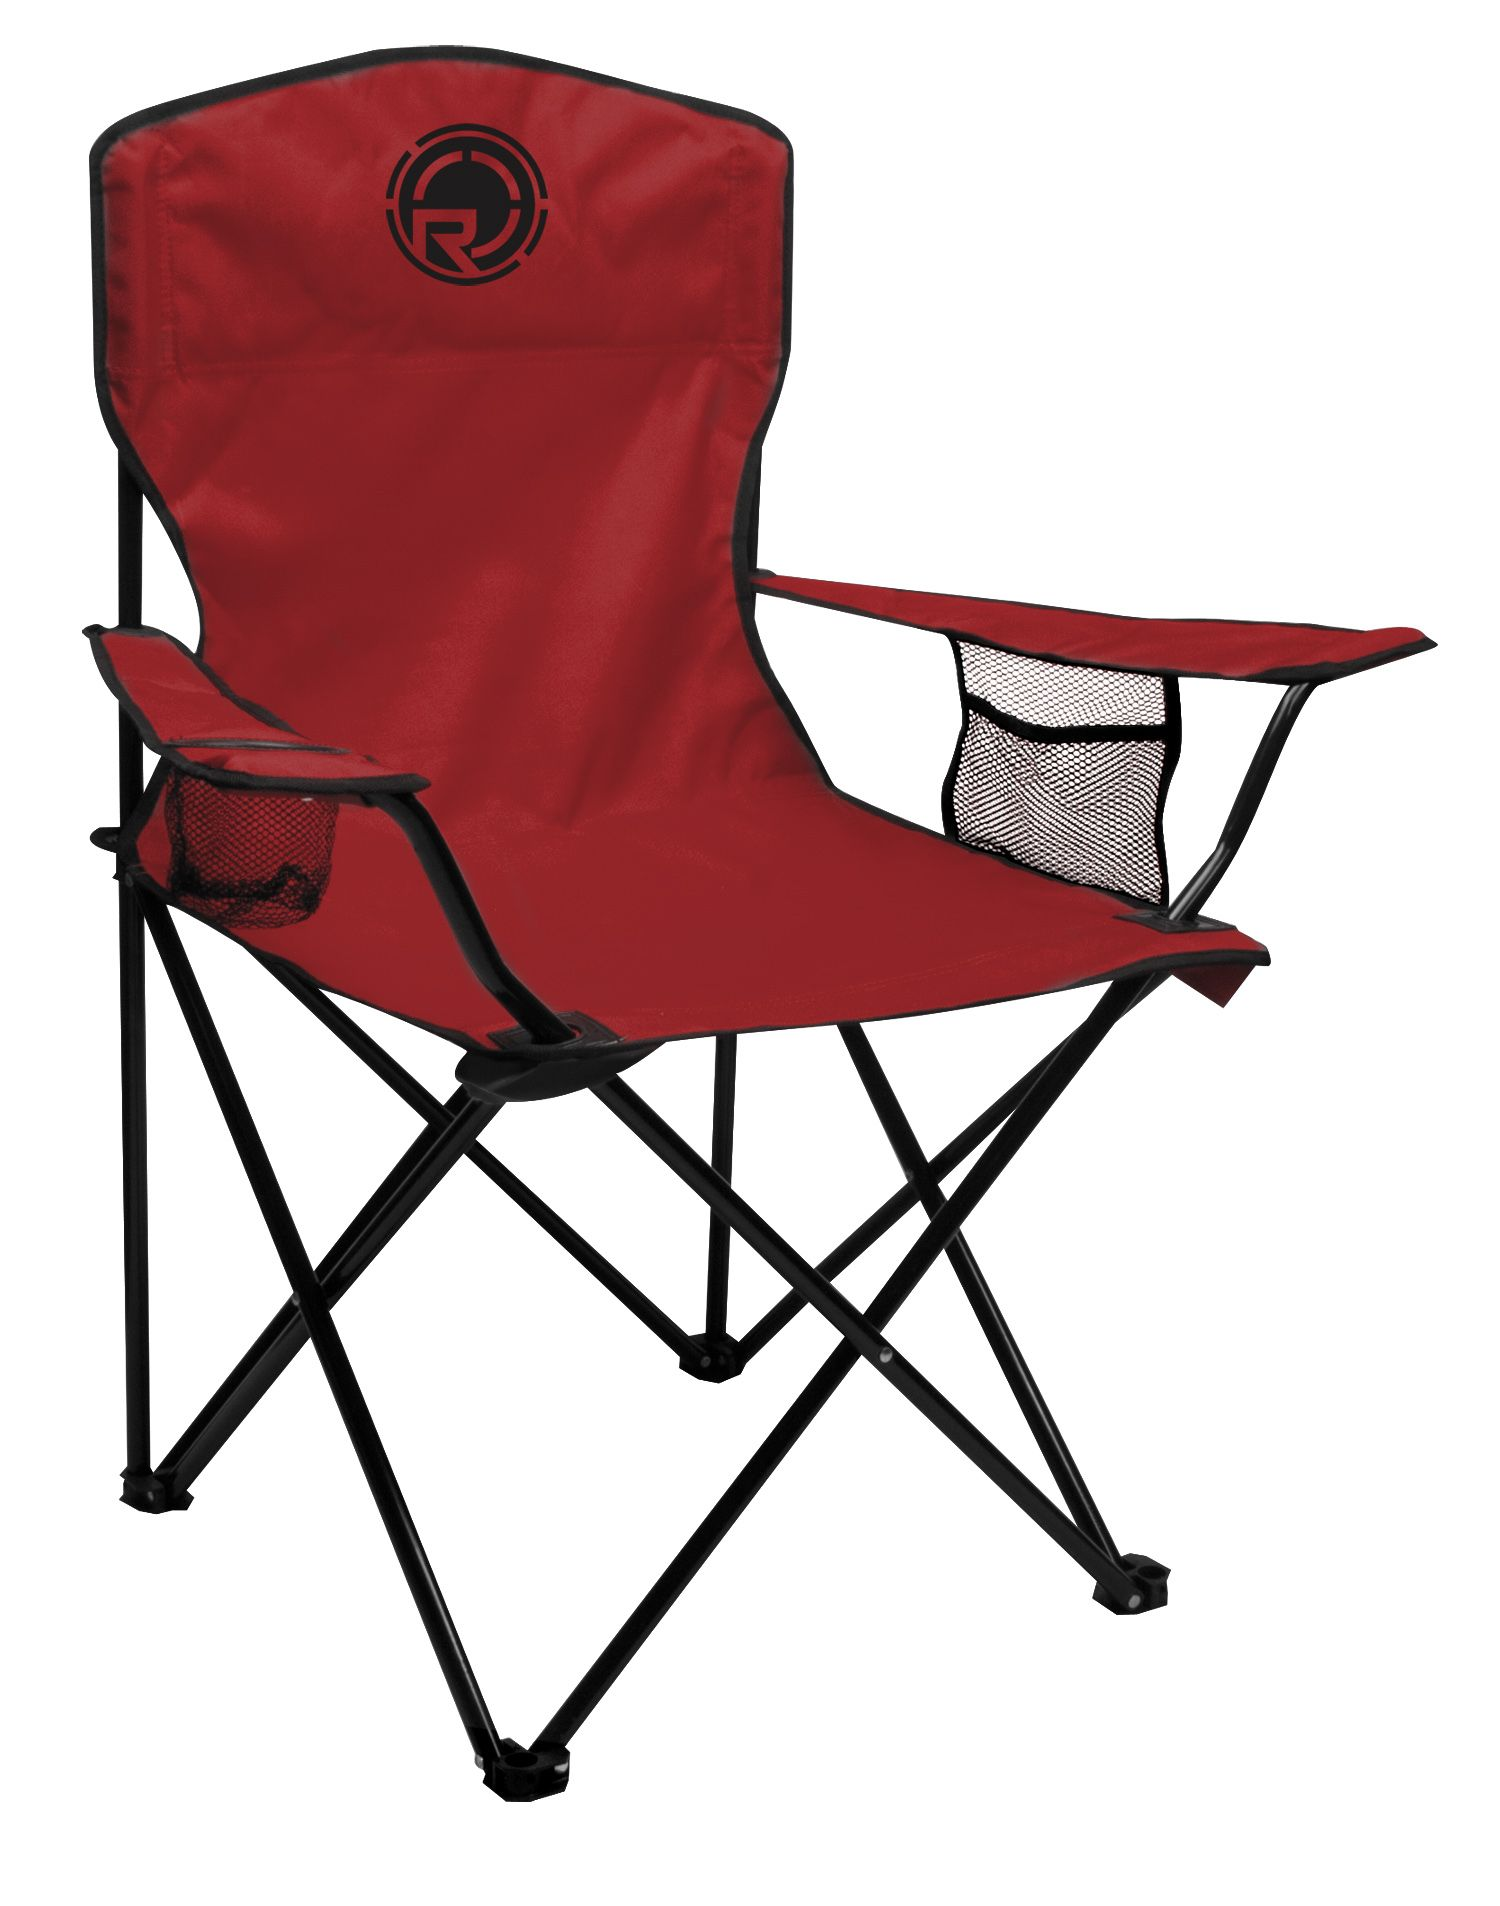 A923 Folding Chair with Carrying Bag Tailgate chairs